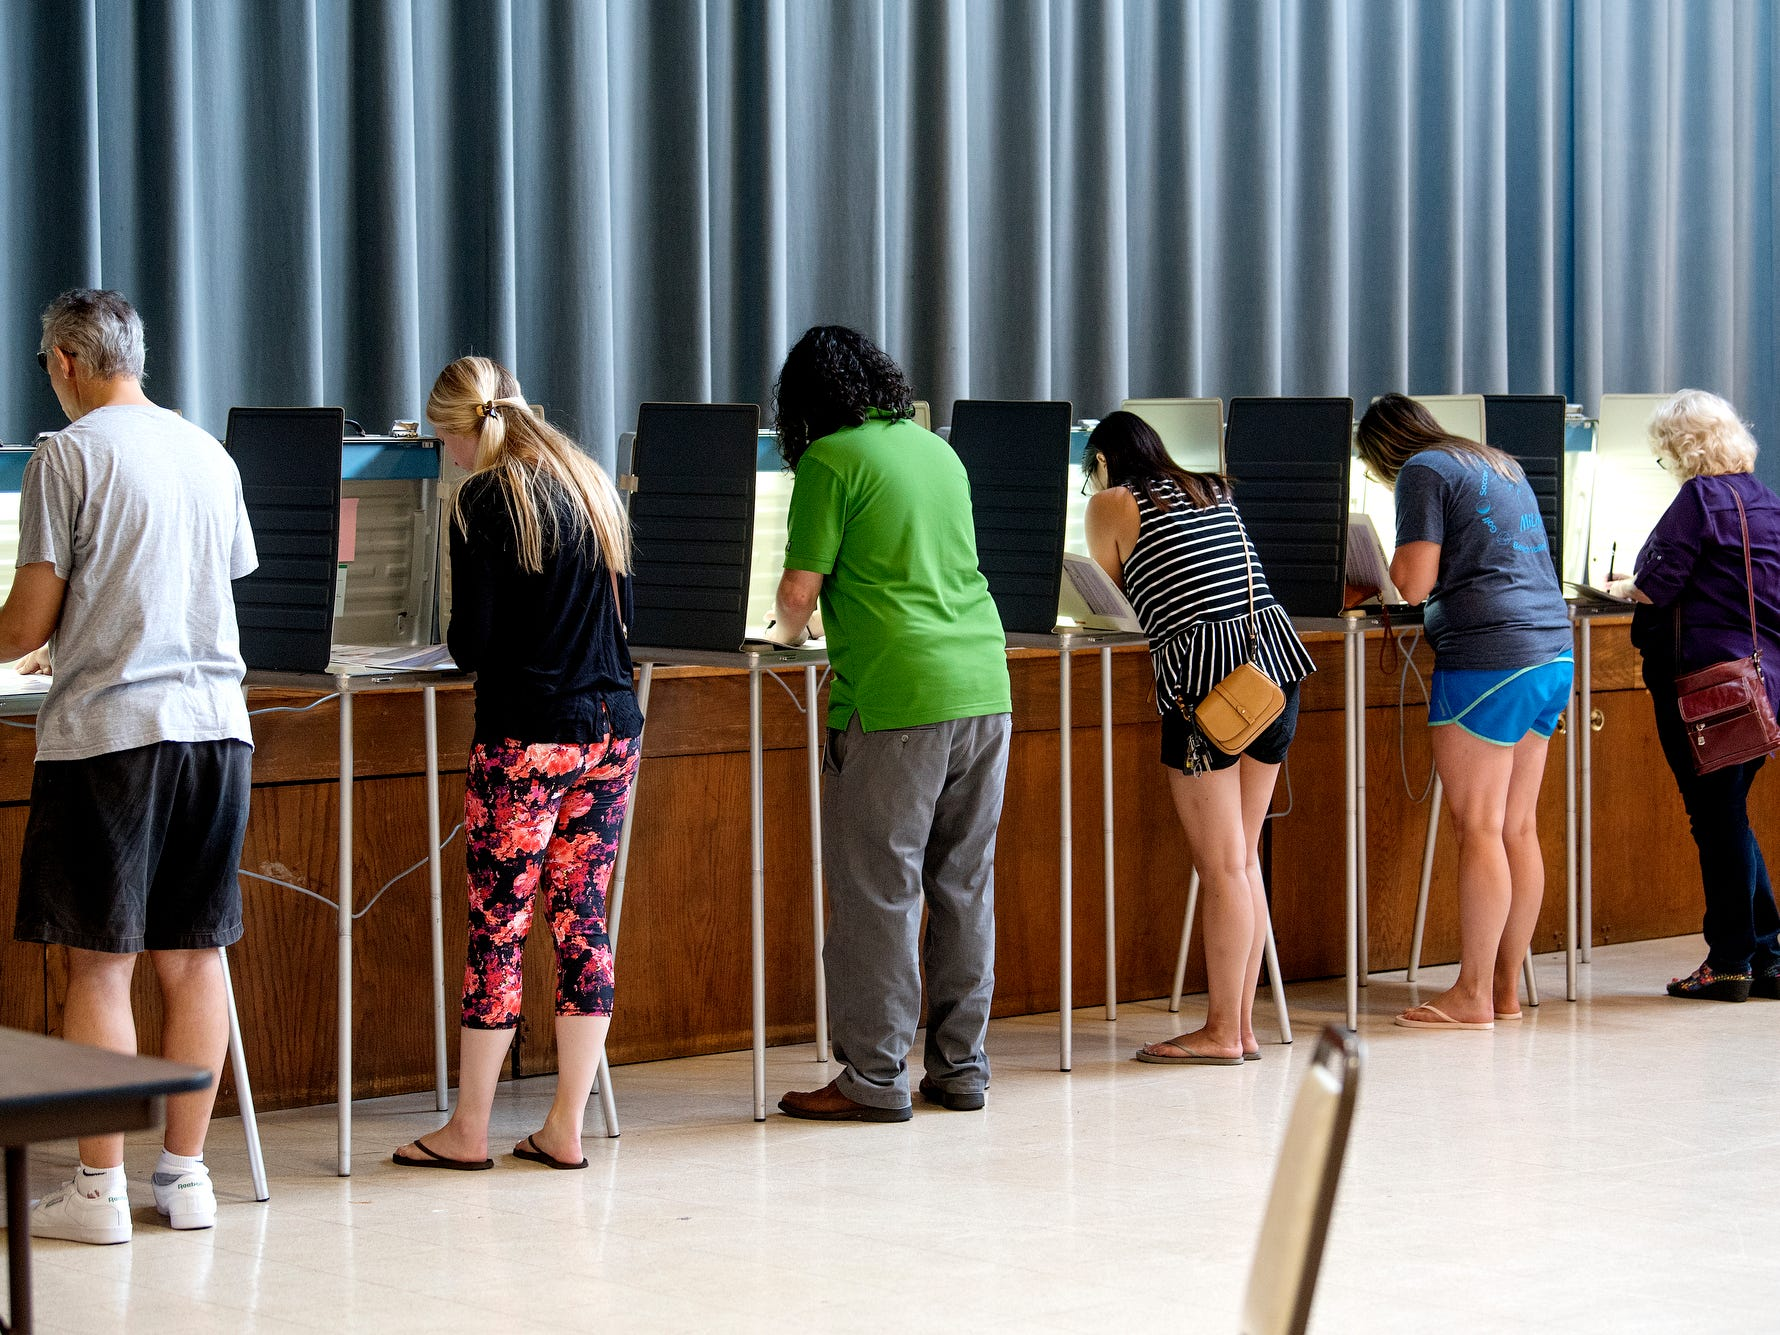 Voters fill out a ballots at the polling place at Shaarey Zedek Congregation on Tuesday, Aug. 7, 2018, in East Lansing.